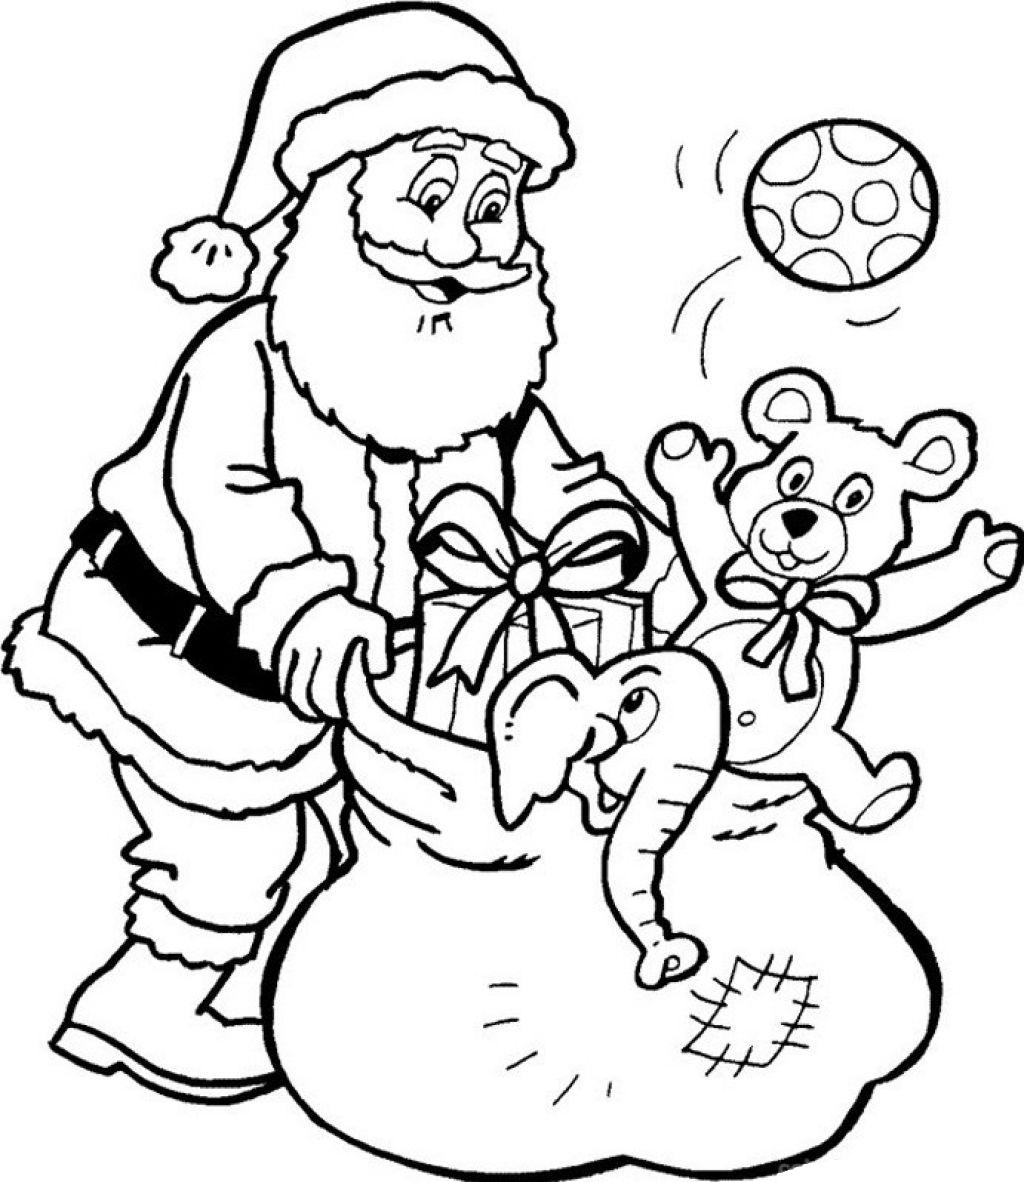 santa claus color page - santa claus coloring pages only coloring pages